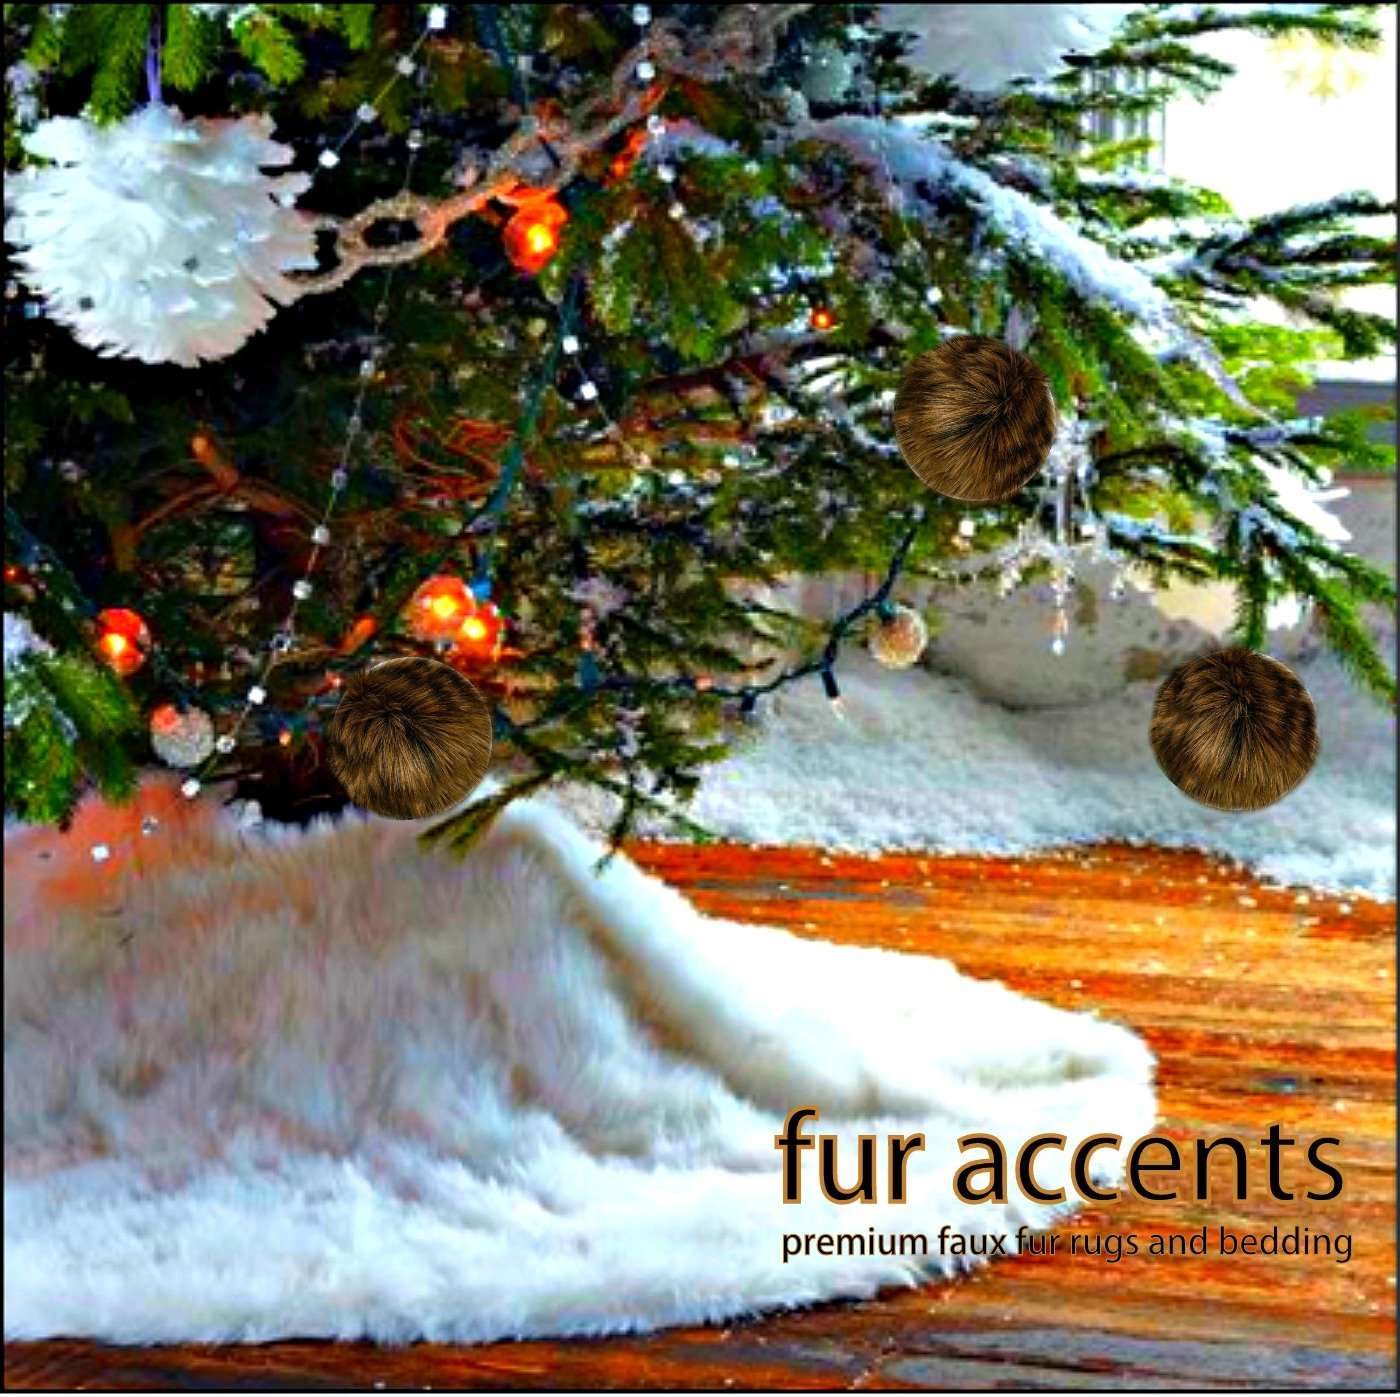 Classic Faux Fur Christmas Tree Skirt - Shaggy Shag Faux Sheepskin Round - White or Off White by Fur Accents - USA (6' Round, White) by Fur Accents (Image #3)